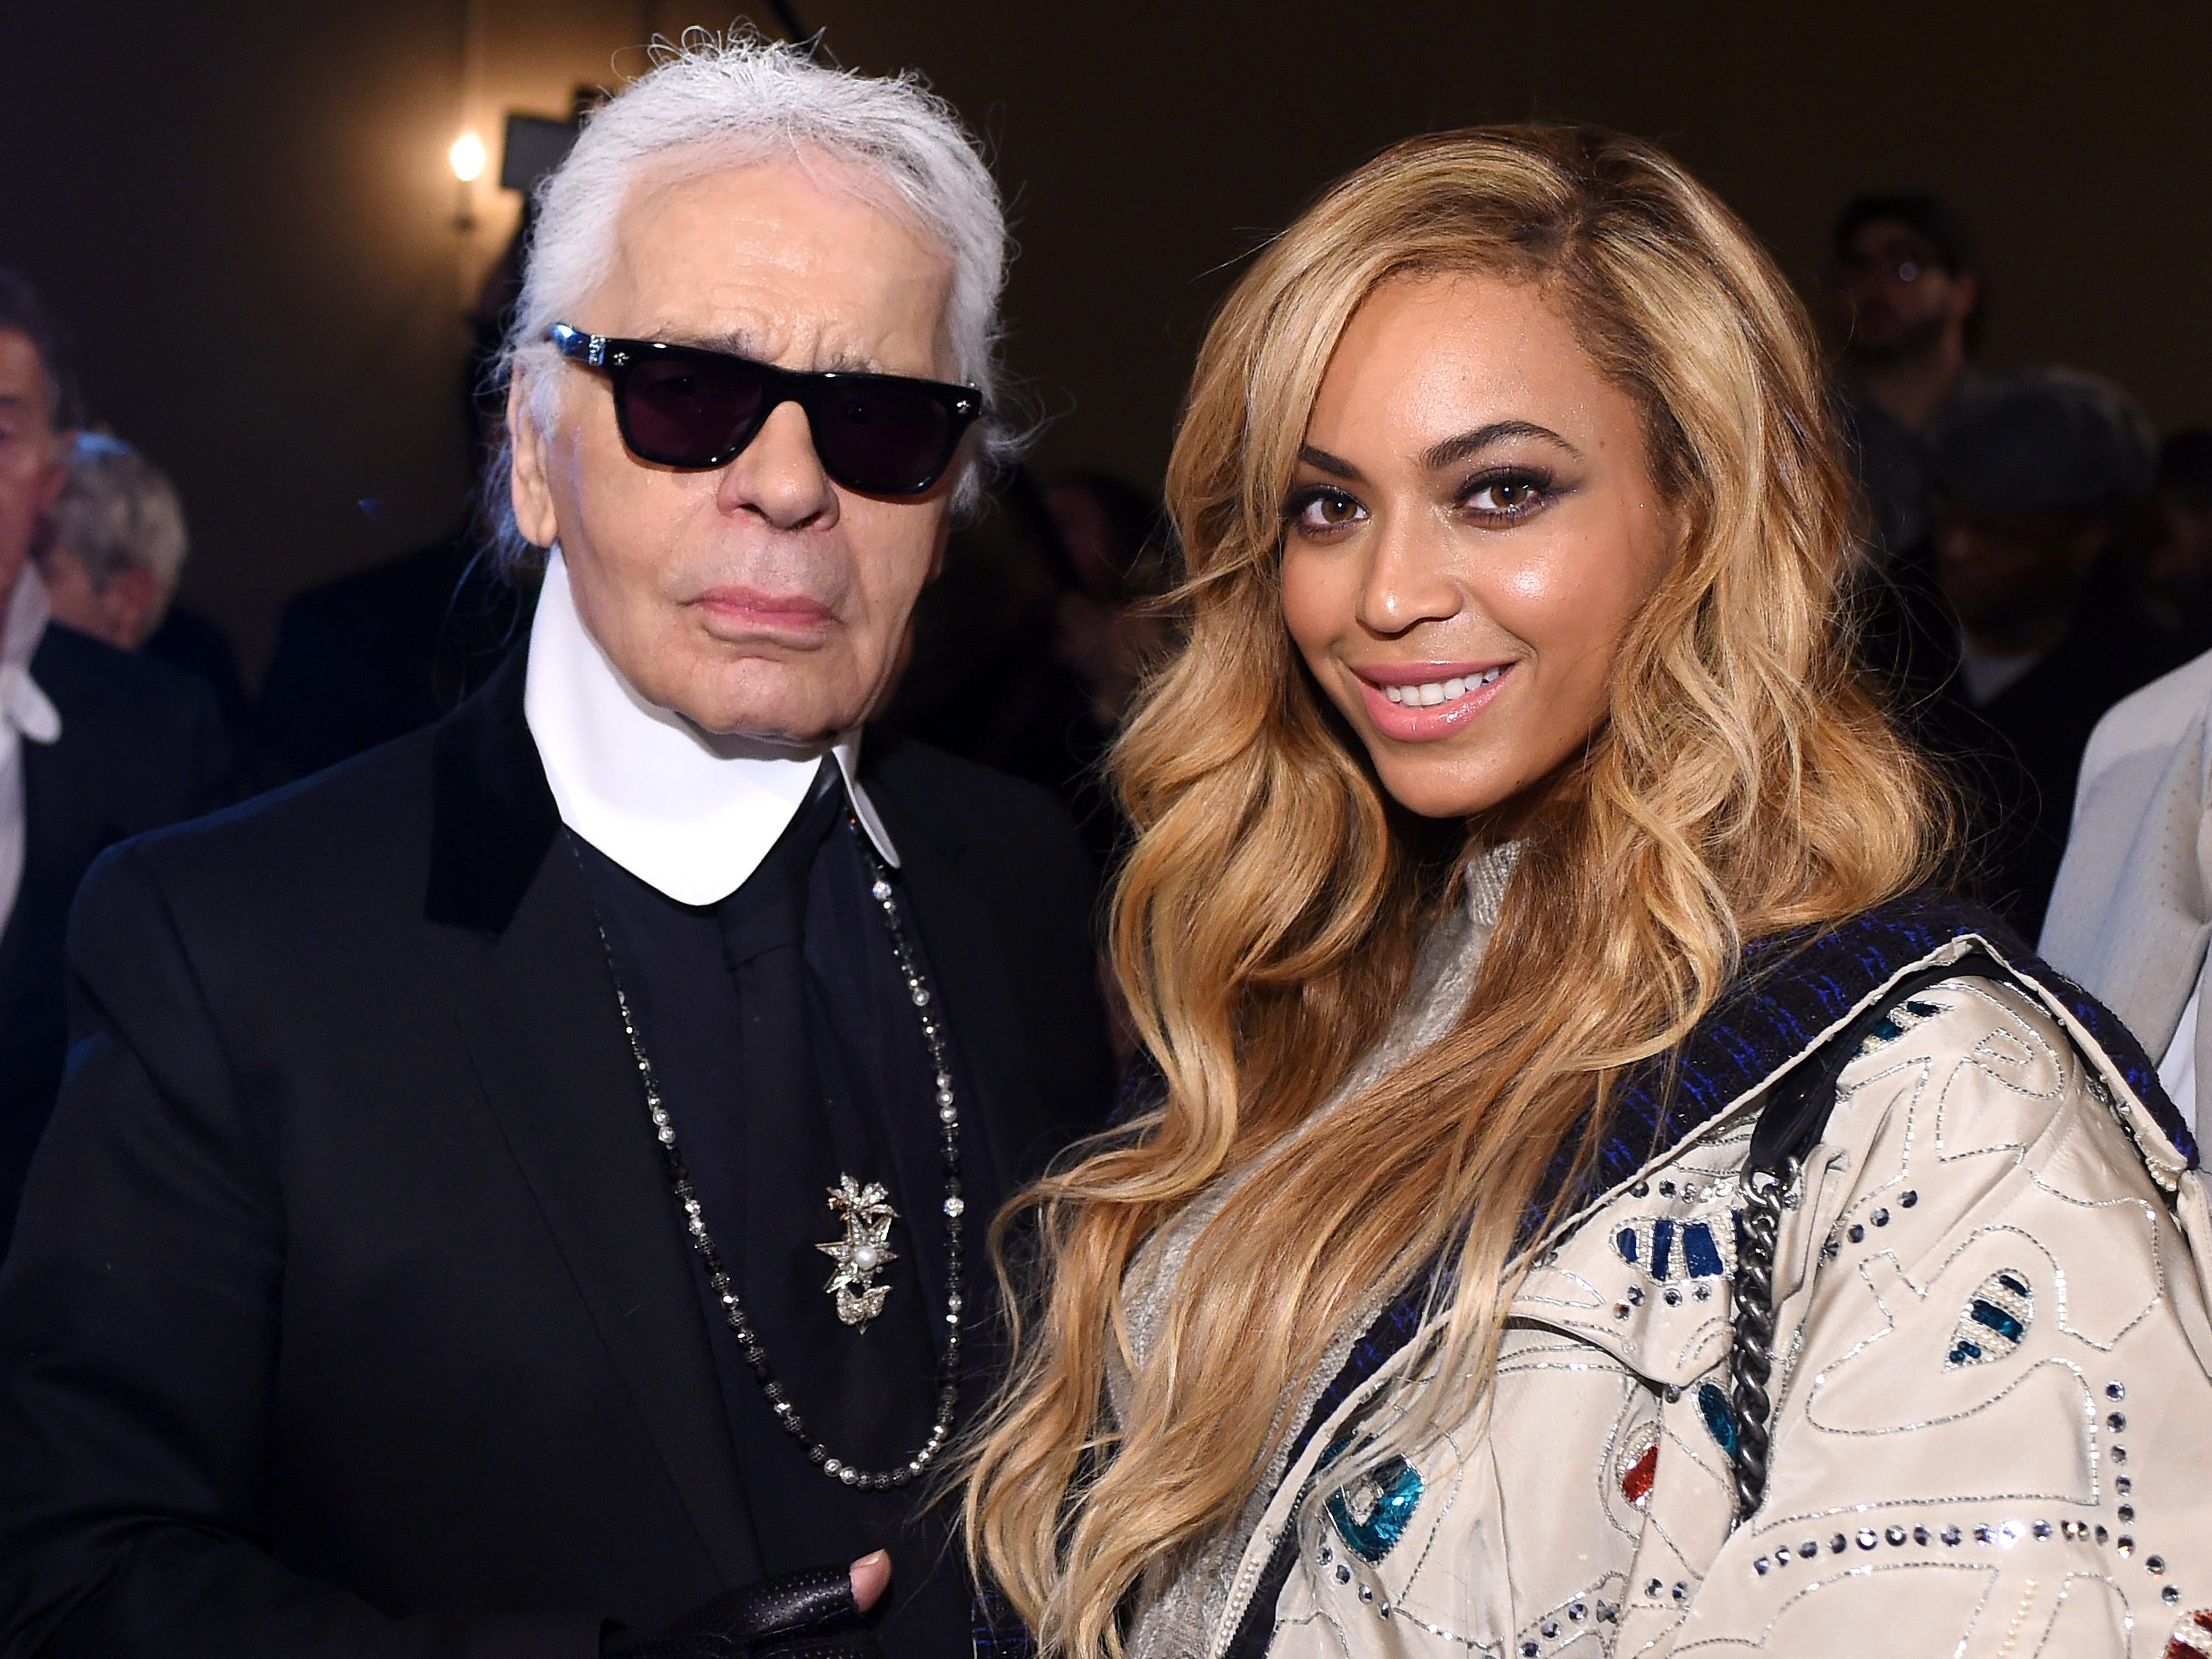 Karl Lagerfeld and Beyonce attend the CHANEL Paris-Salzburg 2014/15 Metiers d'Art Collection in New York City at the Park Avenue Armory on March 31, 2015 in New York City.